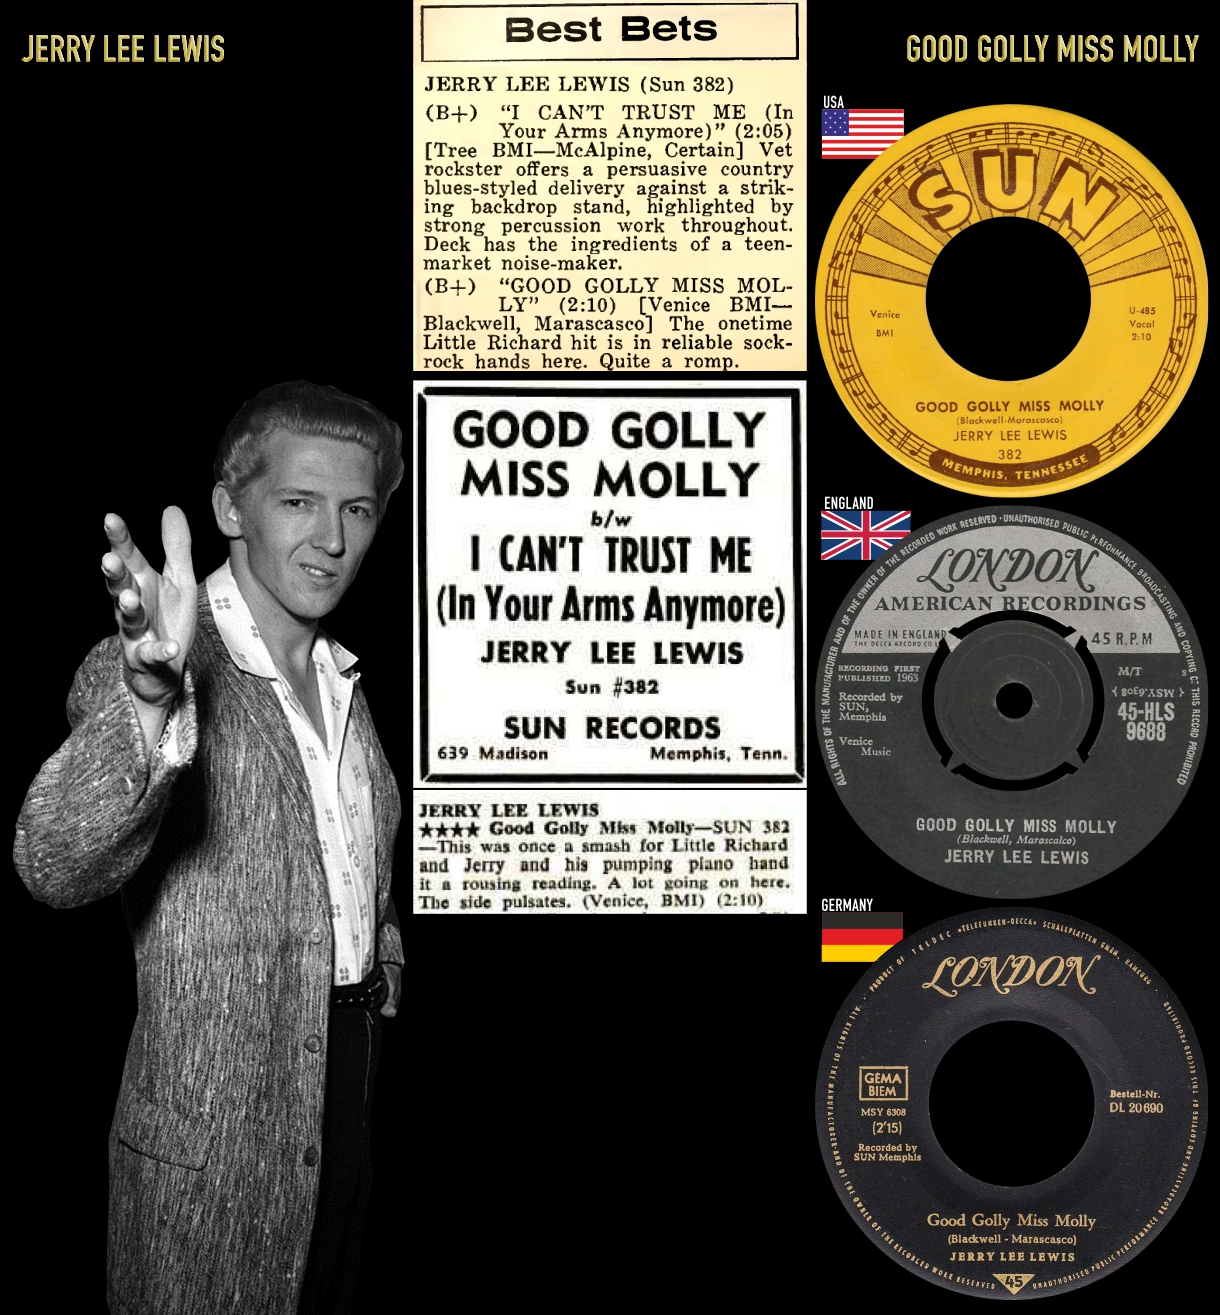 621117_Jerry Lee Lewis_Good Golly Miss Mollyr